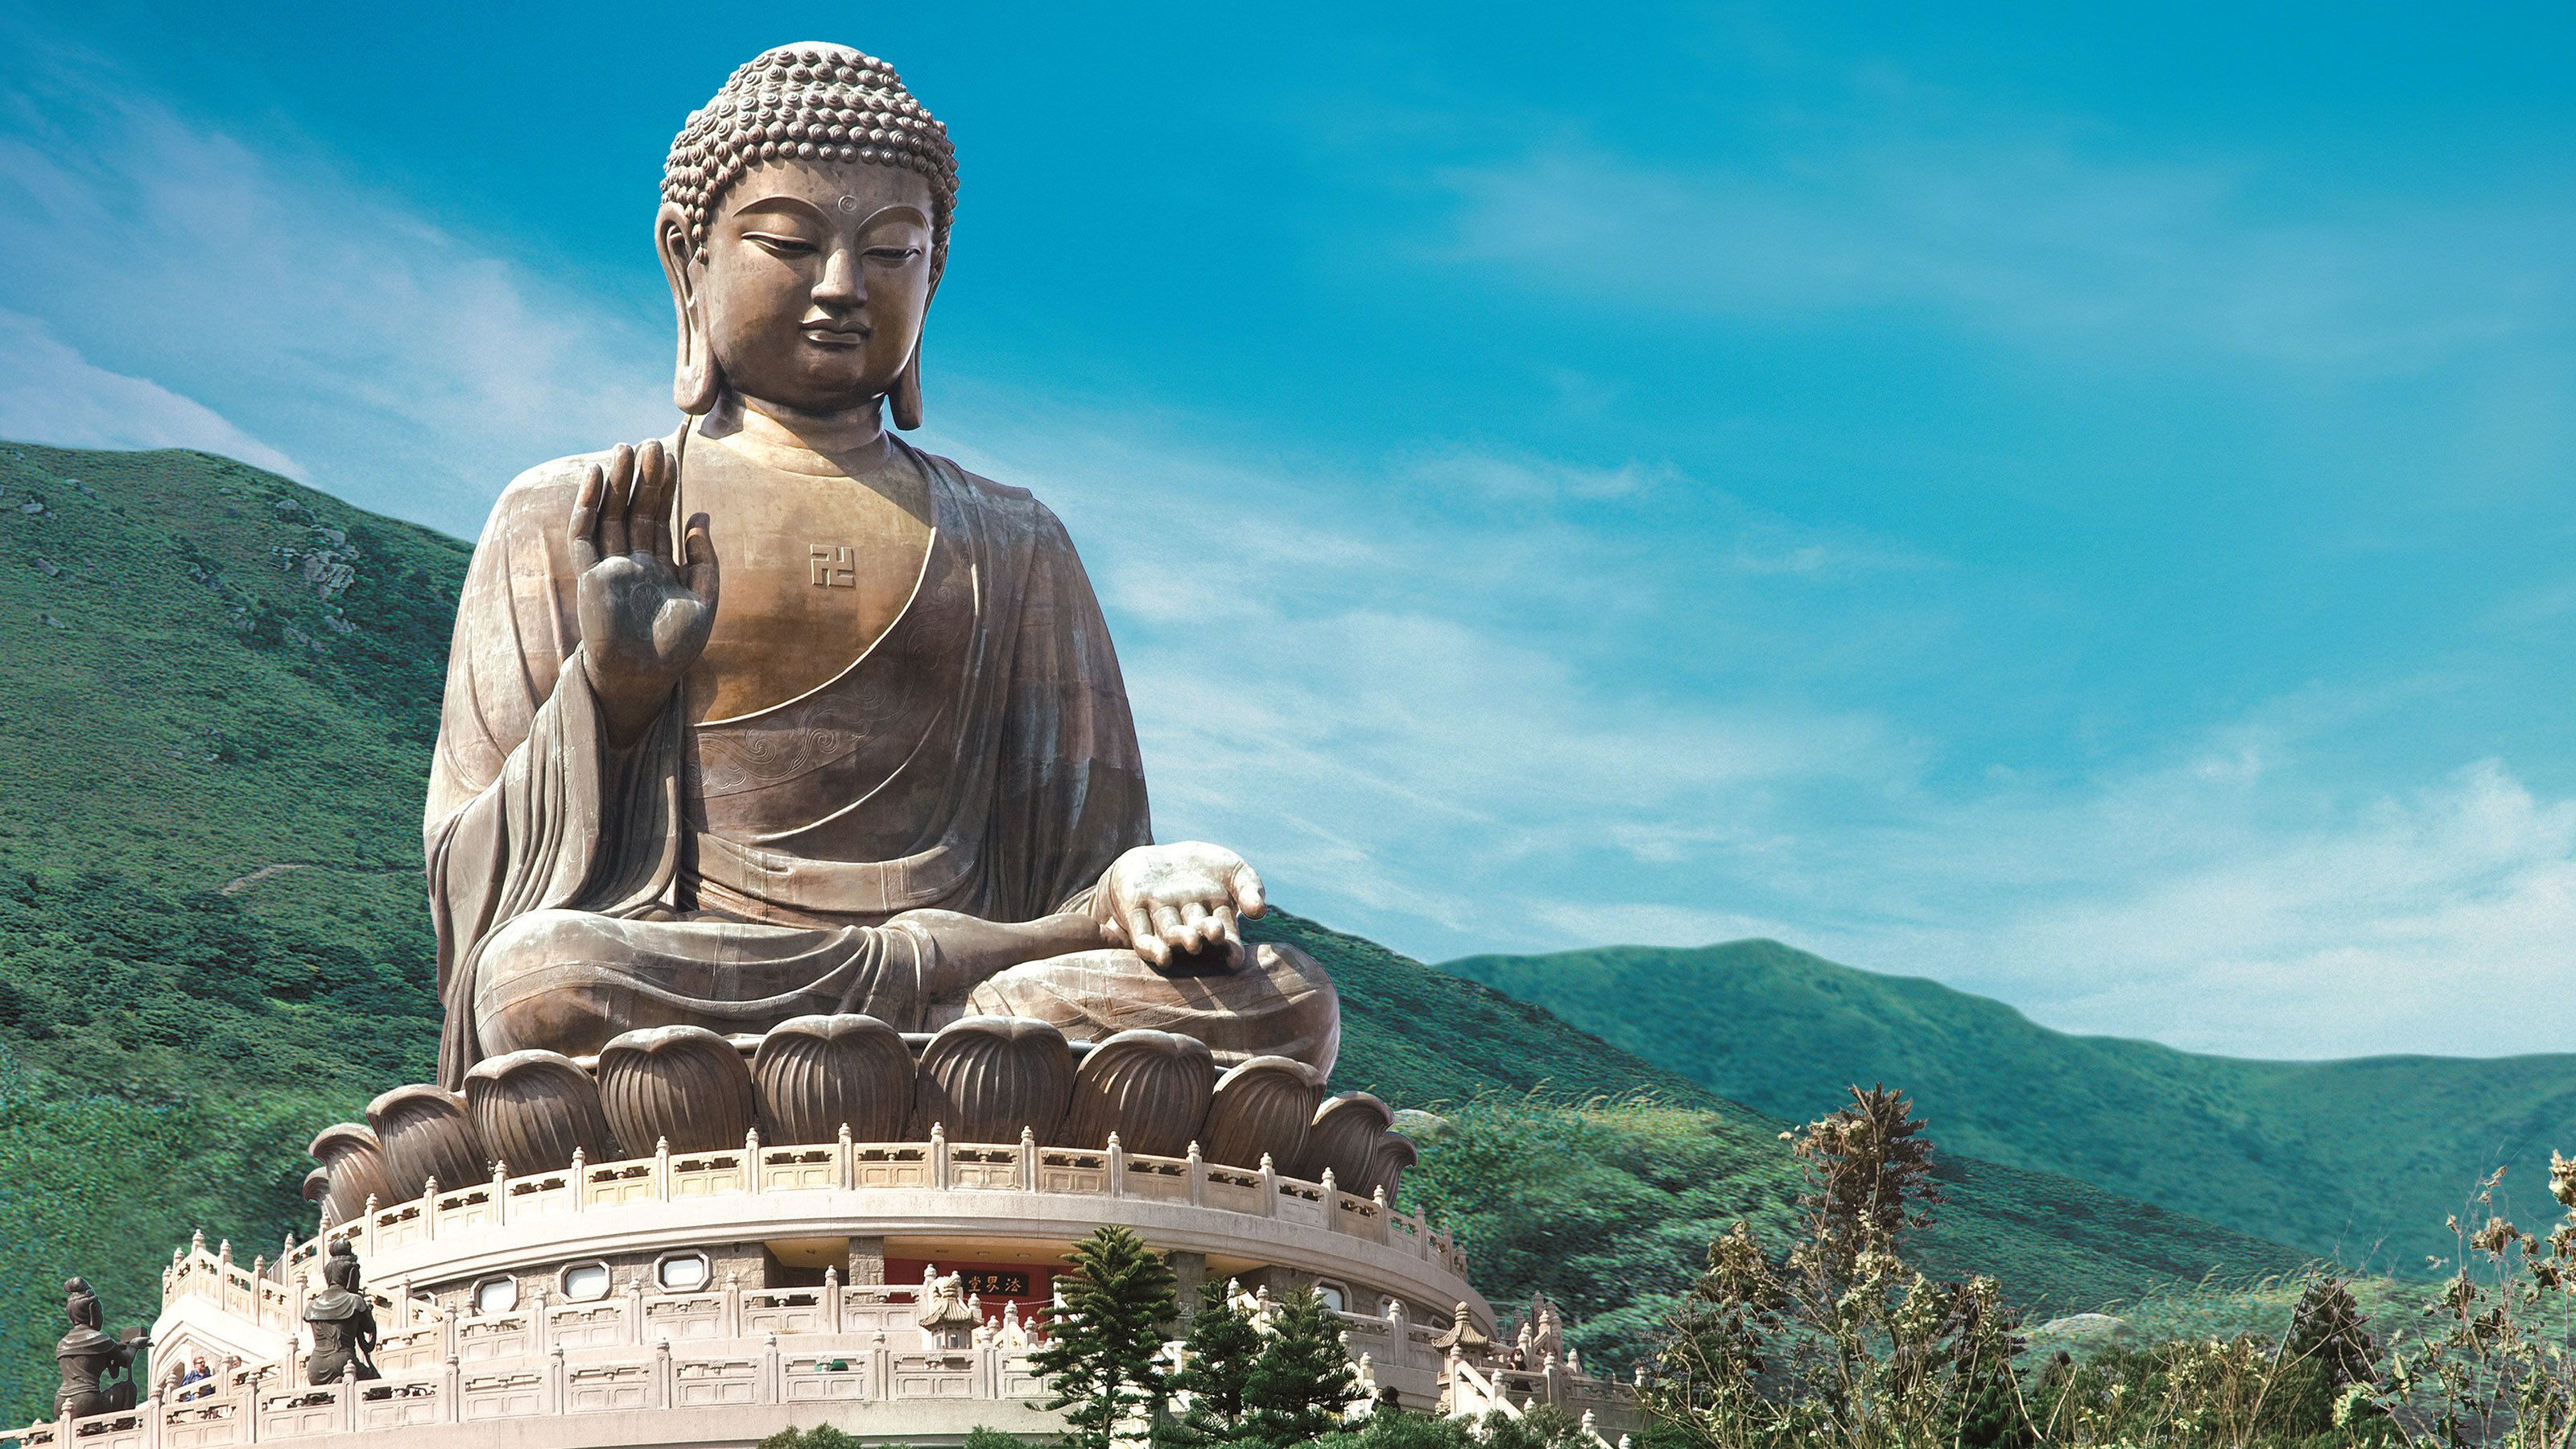 Large Buddha statue surrounded by mountains in Hong Kong.